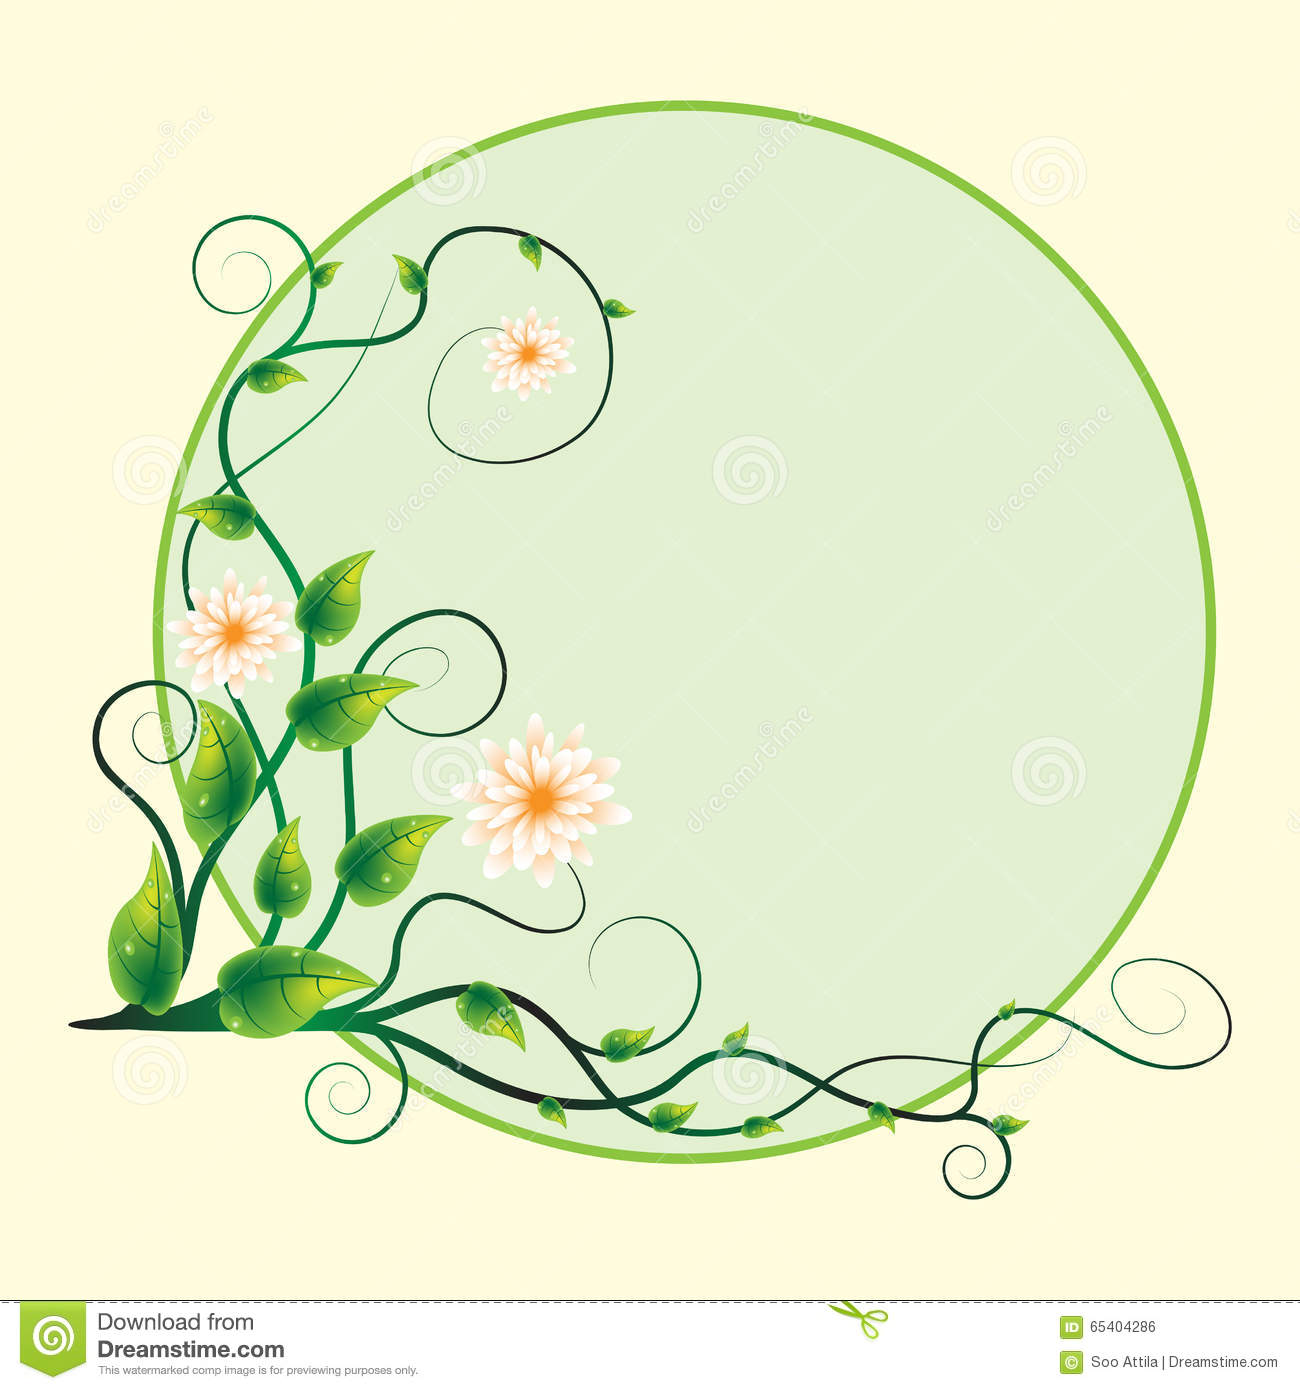 Abstract sticker background swirl flower